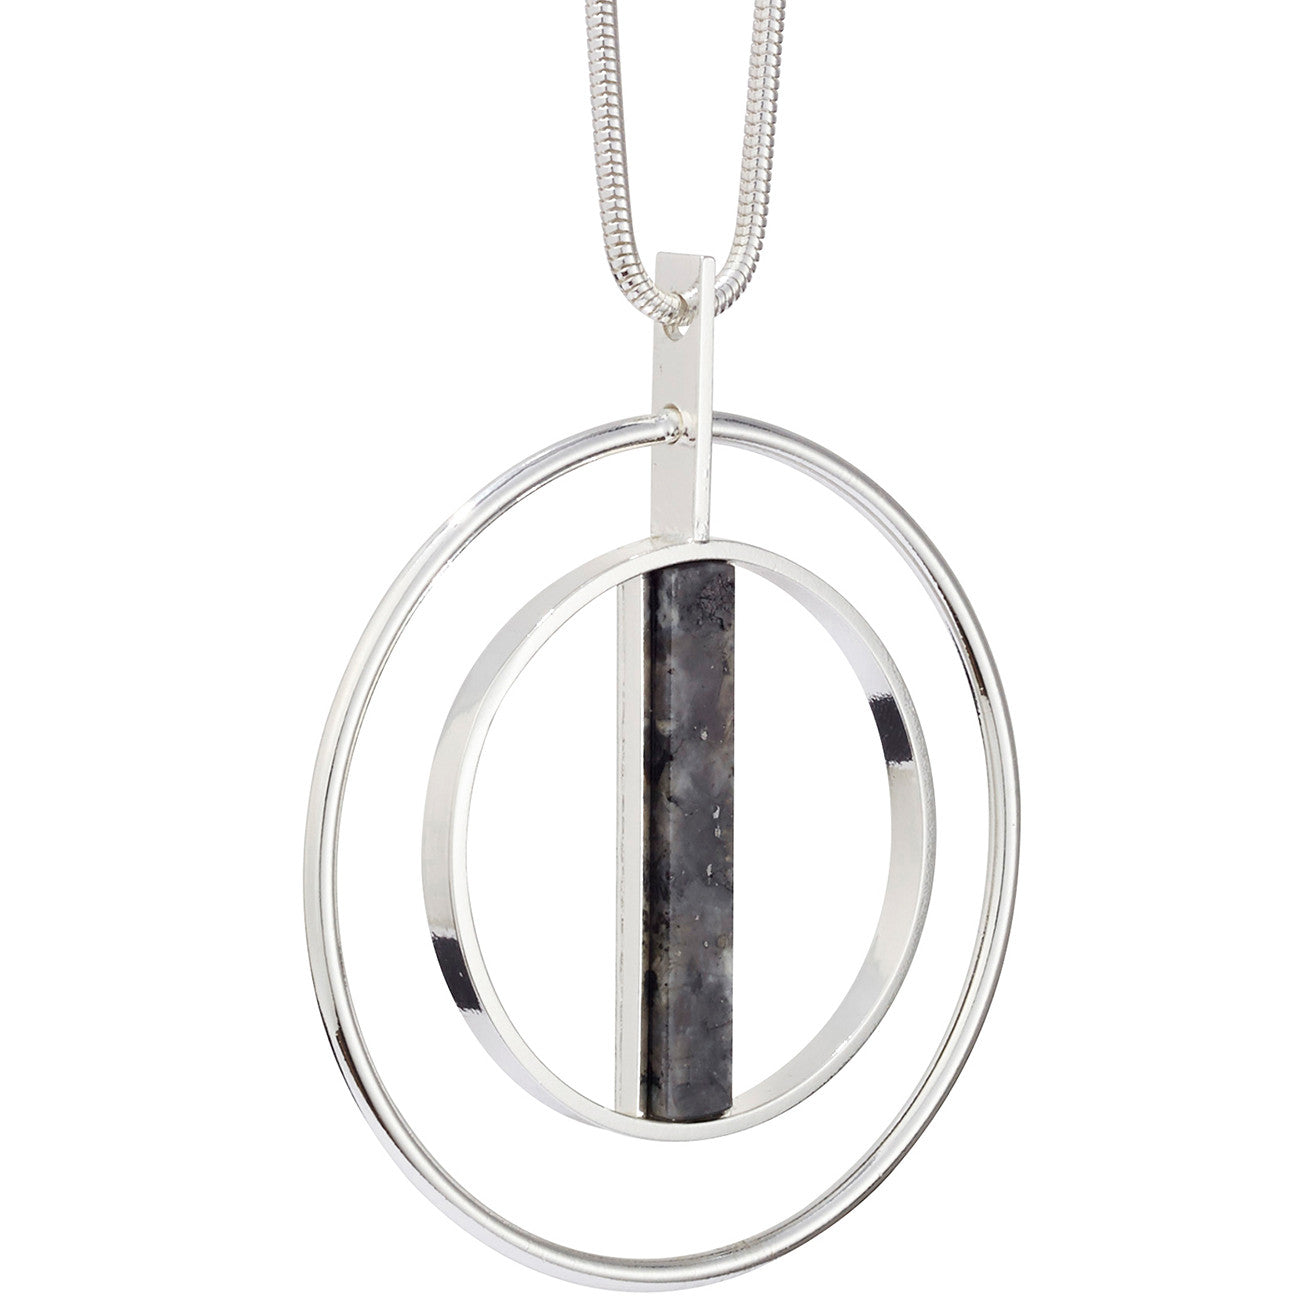 Lennox Pendant by Jenny Bird in Silver with Labradorite Stone